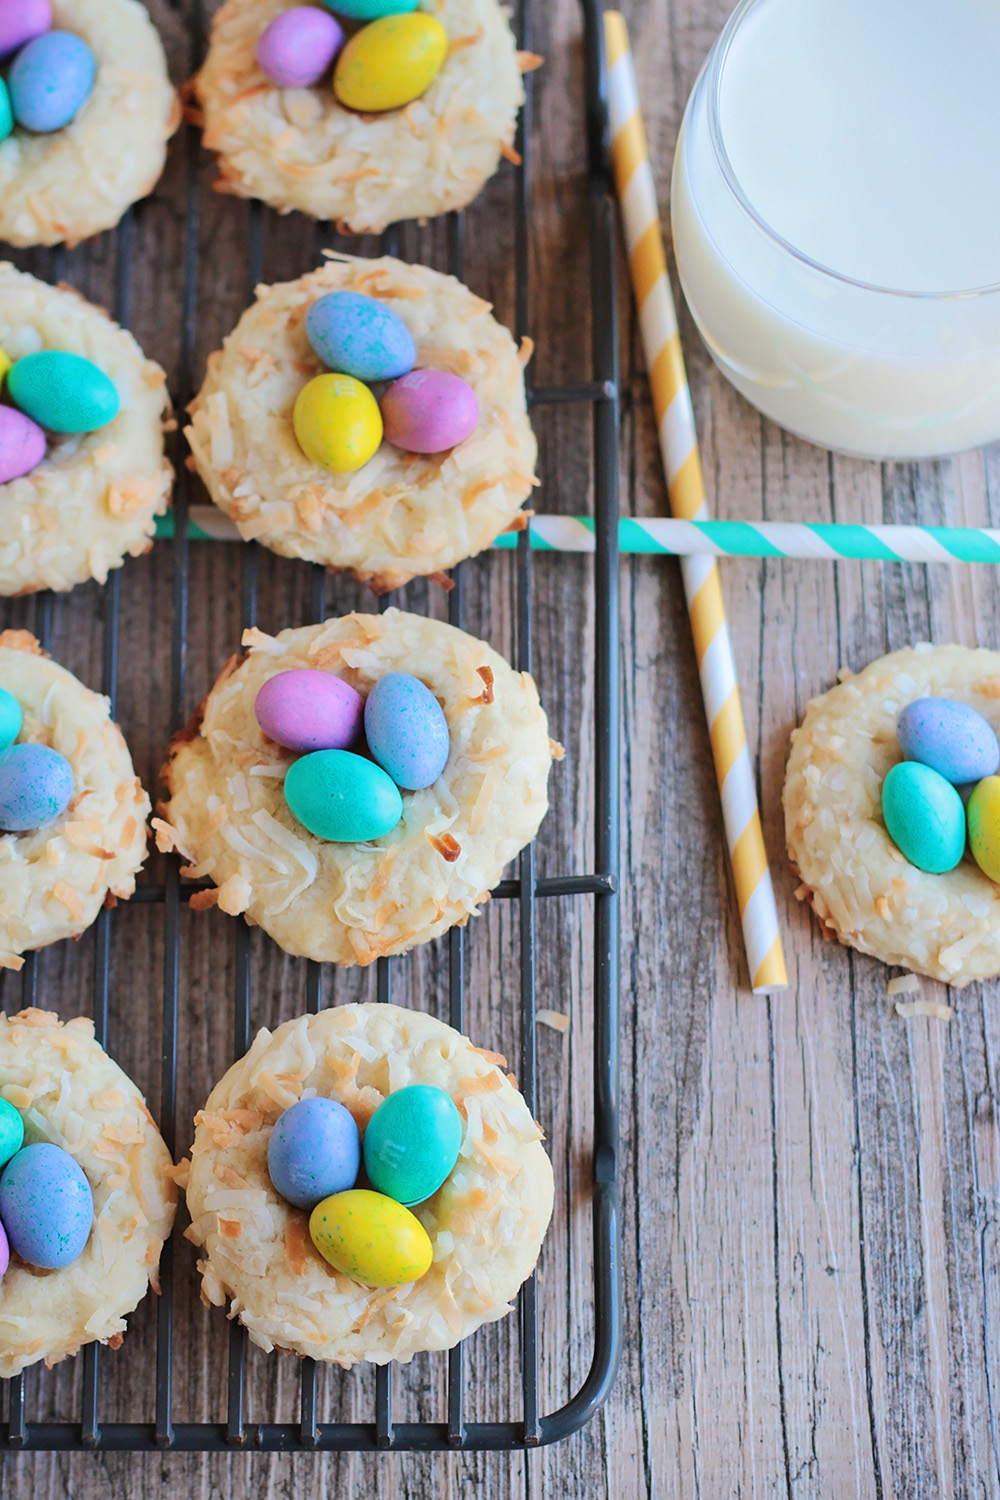 These colorful and delicious bird's nest cookies are perfect for celebrating spring!